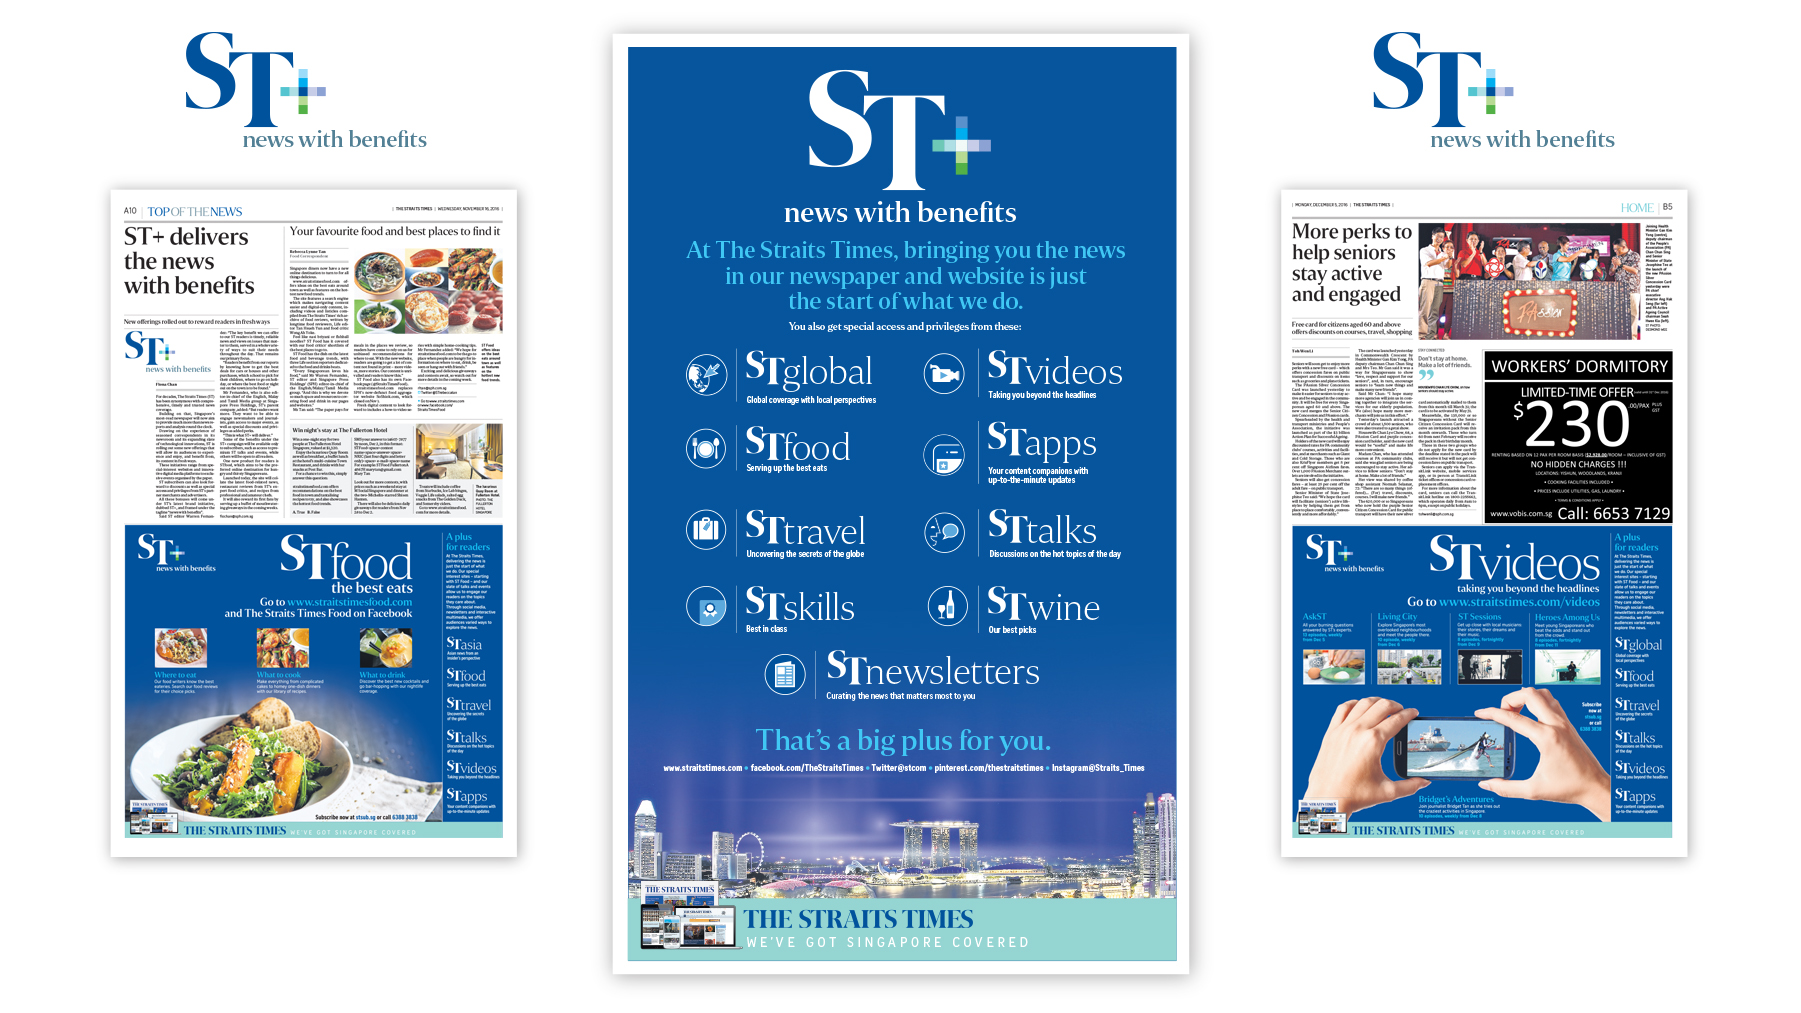 ST +: News with Benefits